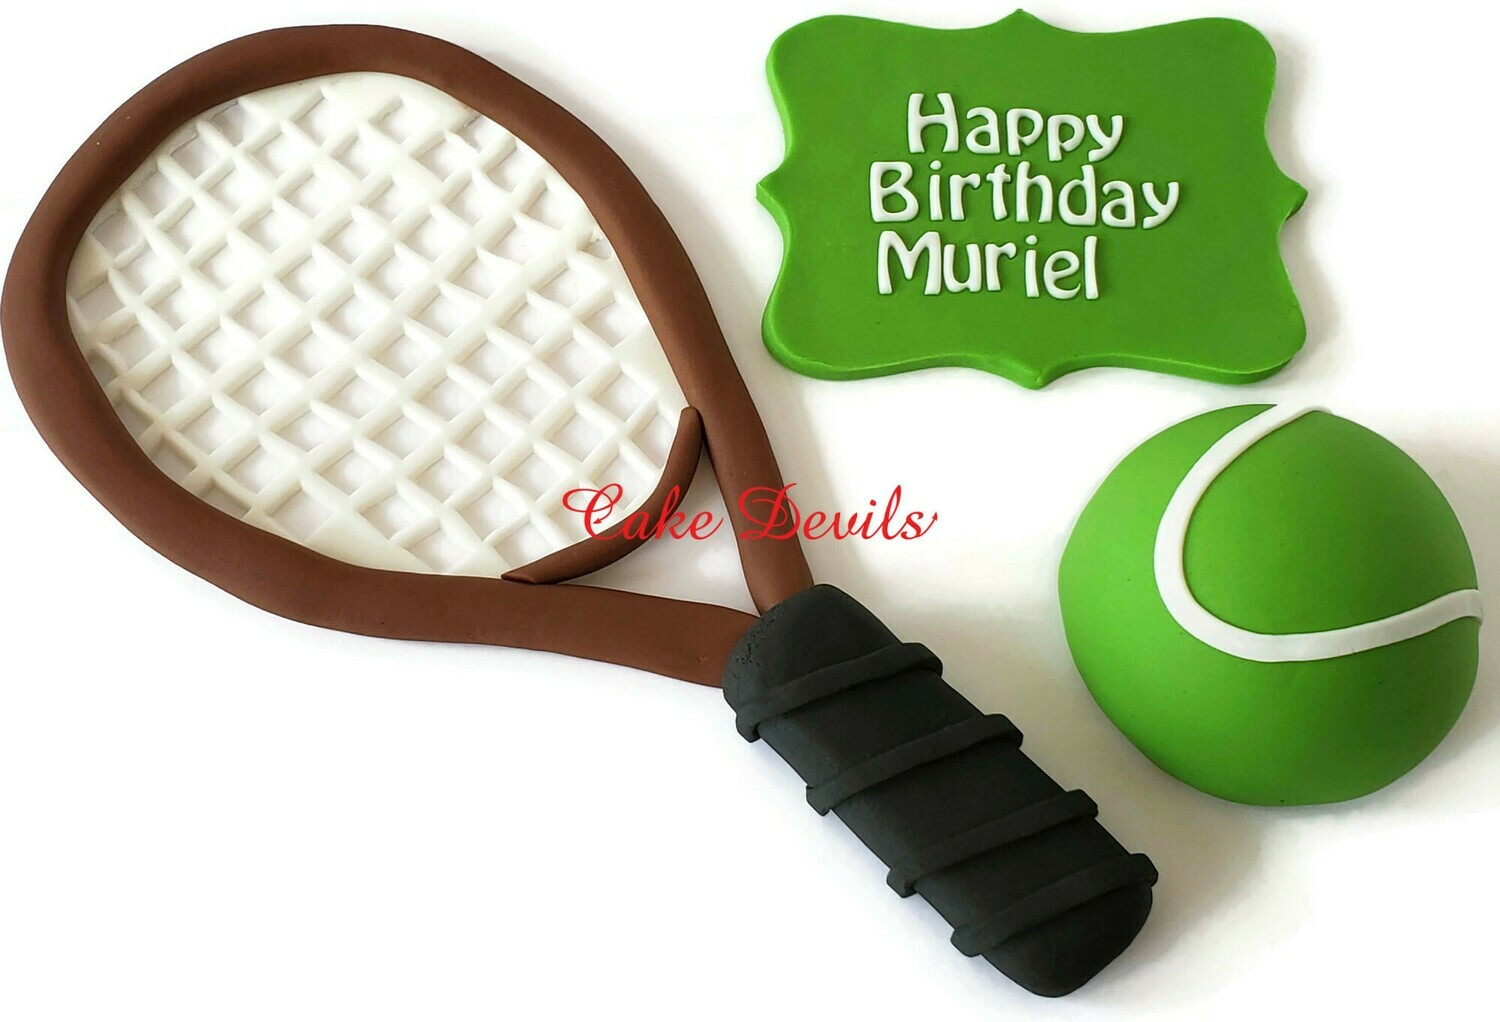 Fondant Tennis Cake Toppers, Tennis Racket, Tennis Ball, and Plaque Cake Decorations for birthday, retirement, and more!